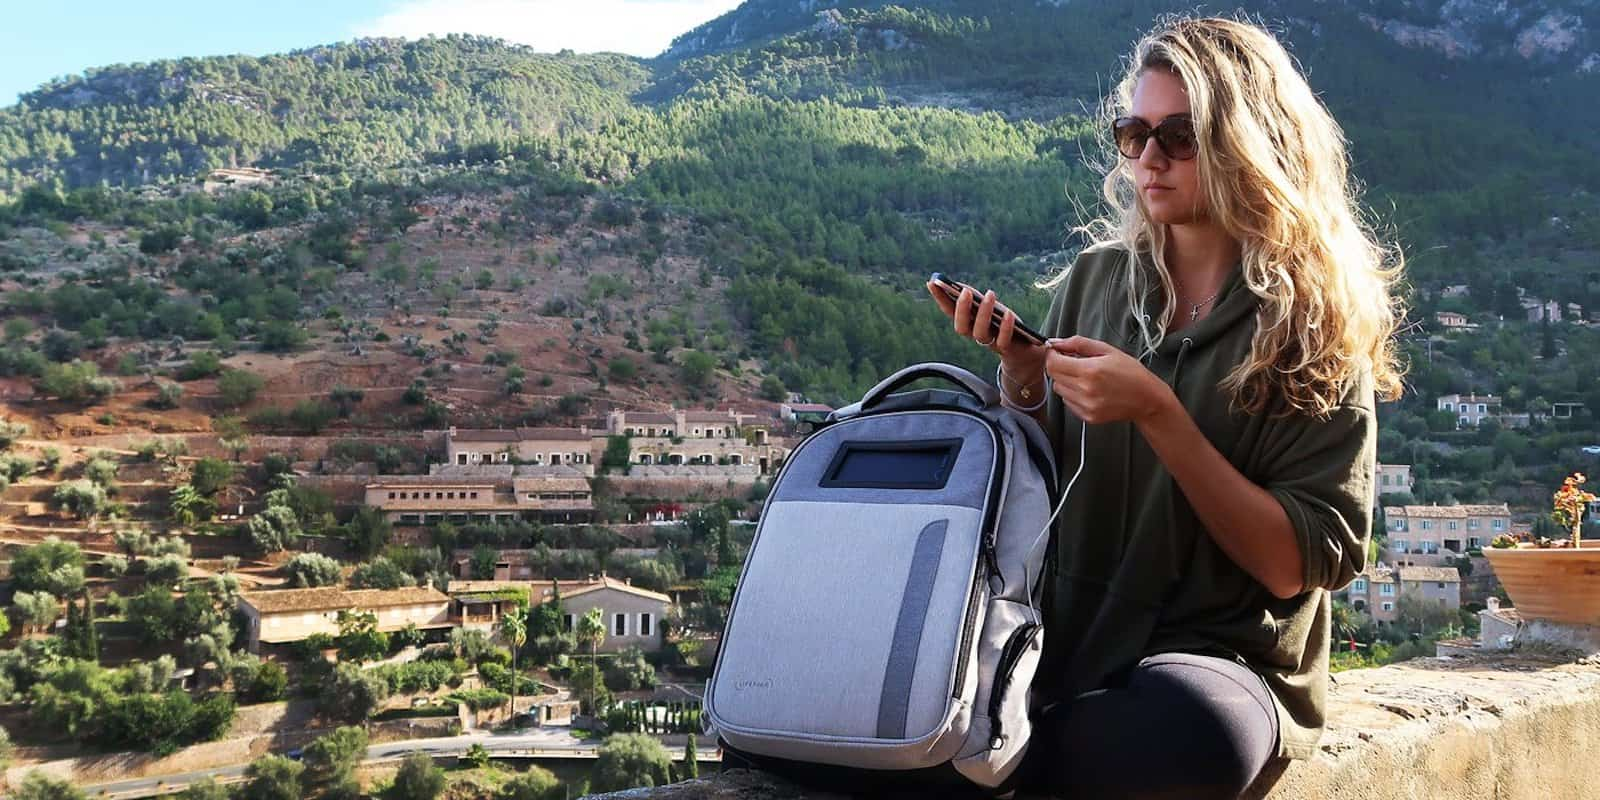 This backpack has pockets for all your devices, along with other goodies like USB charging and a solar cell.